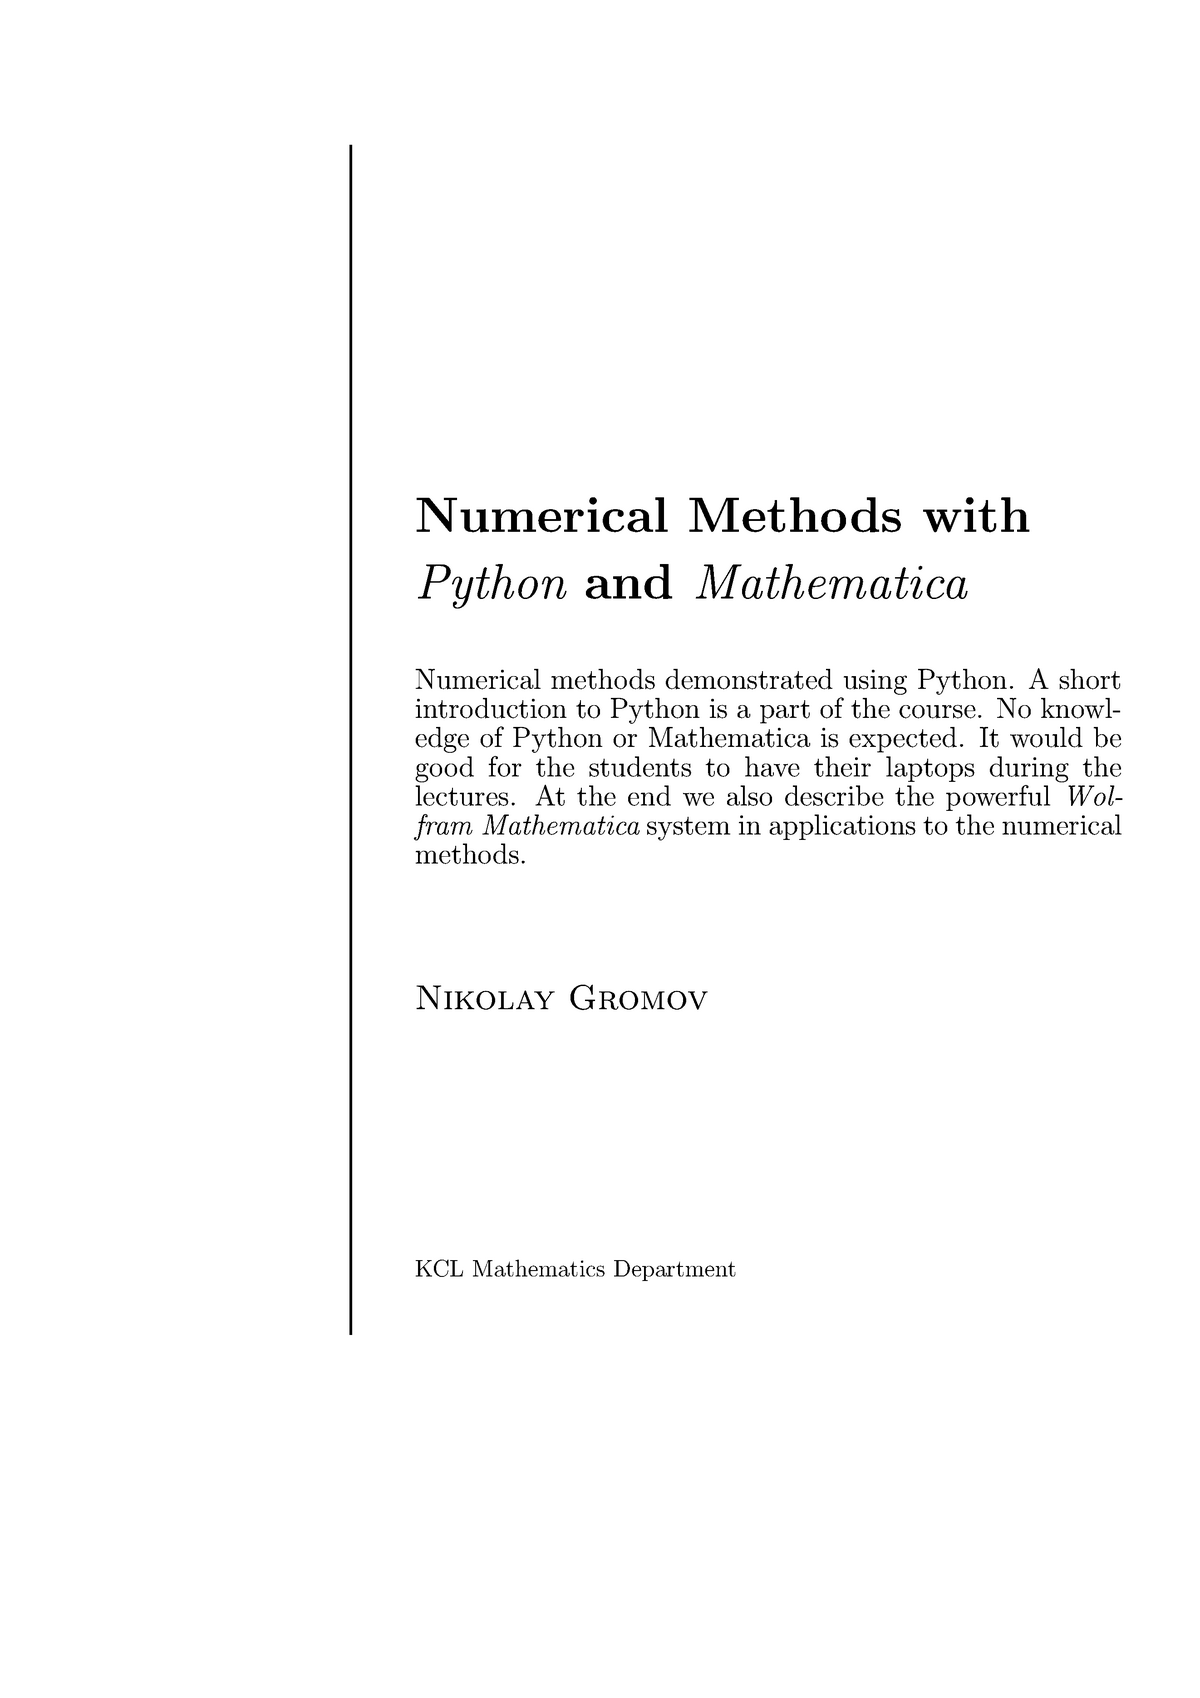 Numerical Methods - Lecture notes - LECTURES - Lecture notes